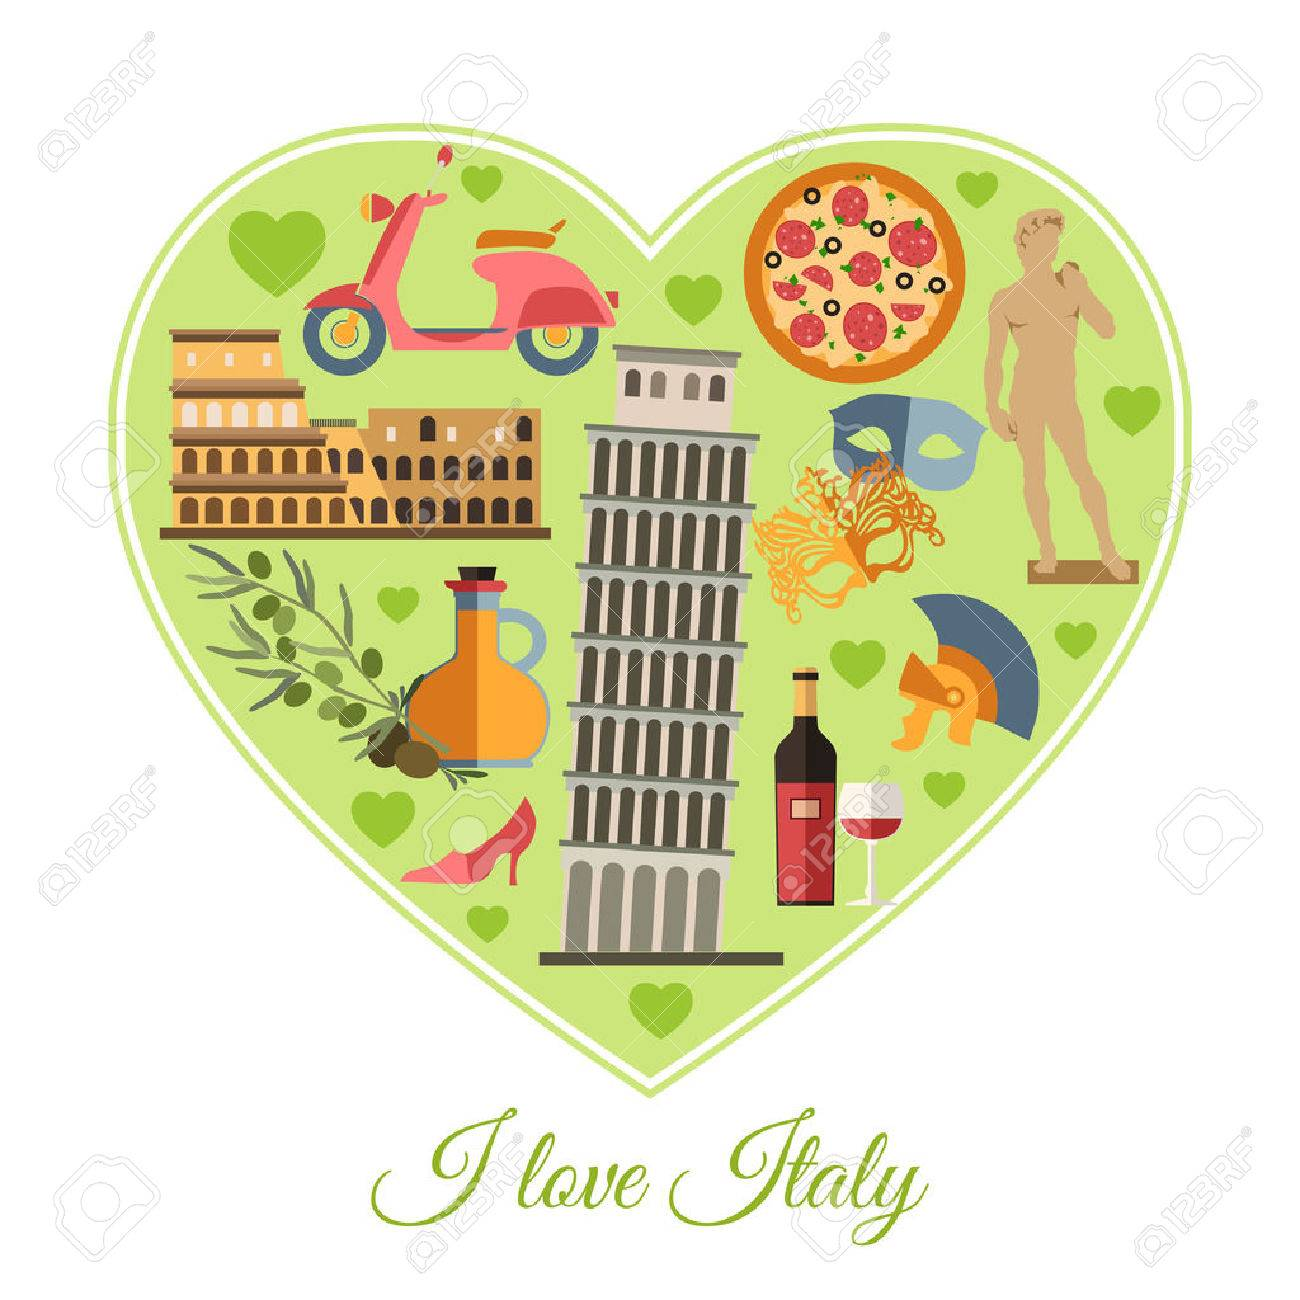 I Love Italy Italy Travel Background With Place For Text Isolated